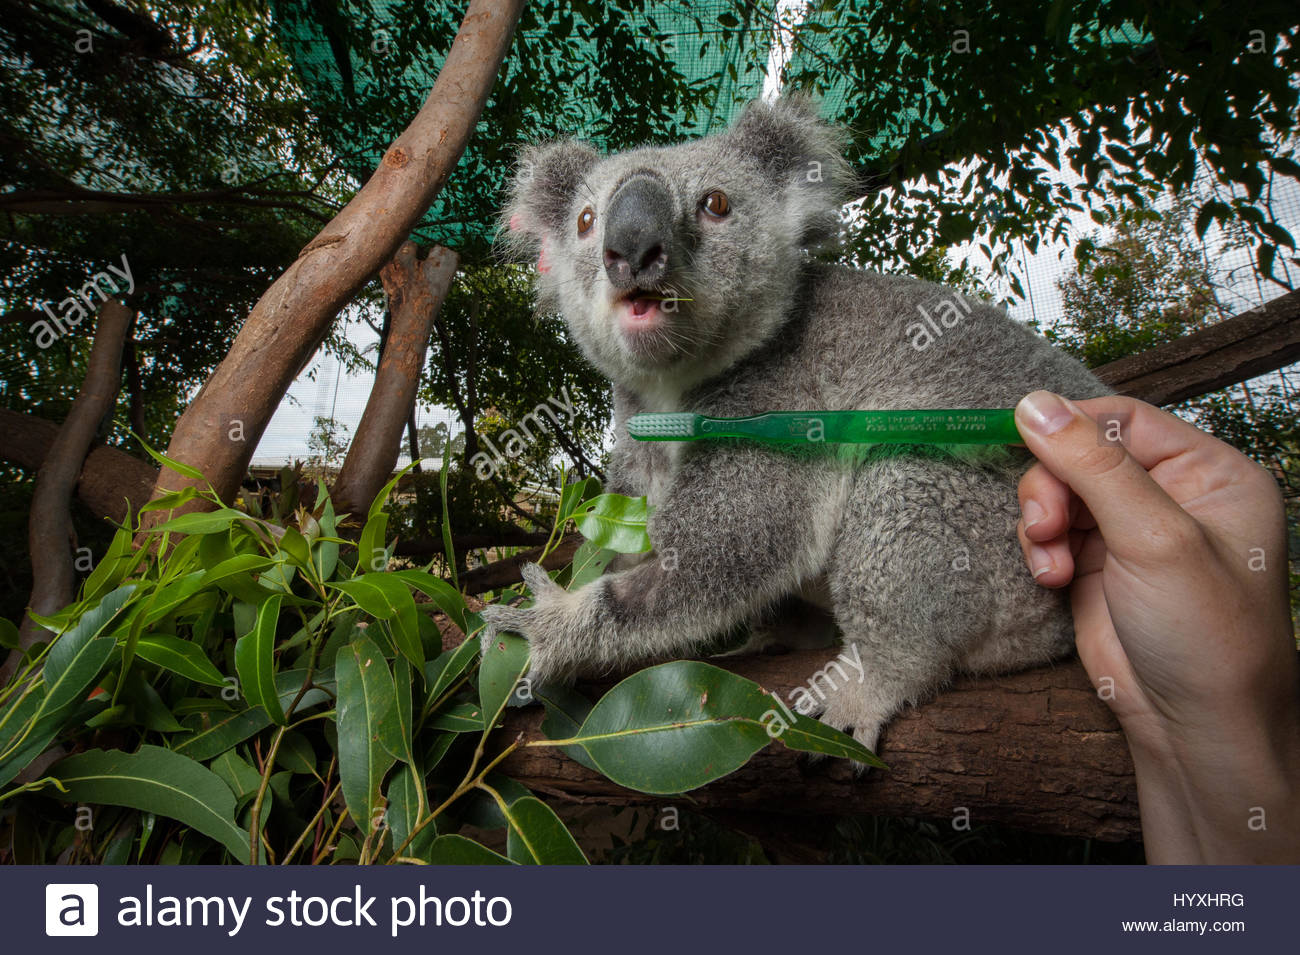 A toothbrush is held up next to a koala, Phascolarctos cinereus, at the Australia Zoo Wildlife Hospital. Stock Photo